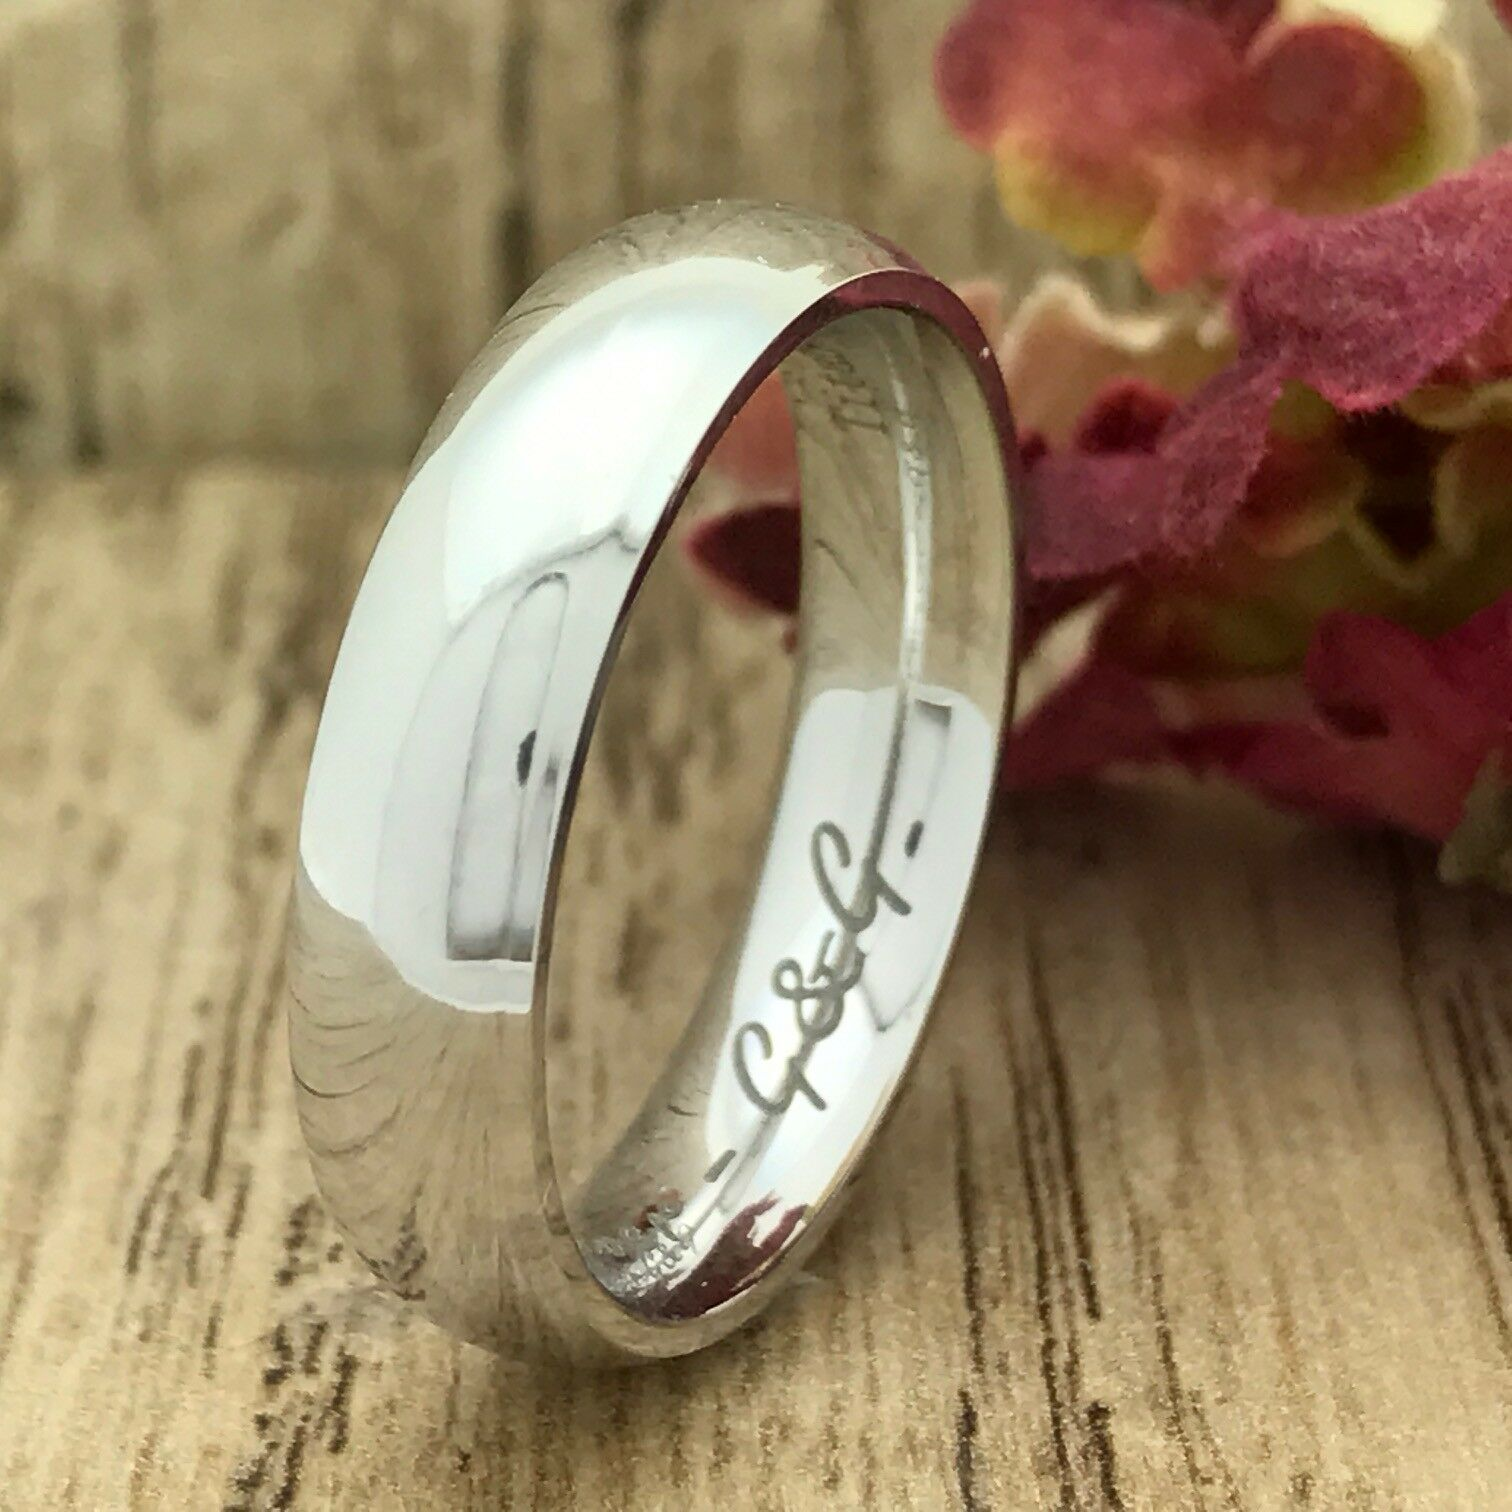 5mm Titanium Ring, Personalized Engraved Titanium Wedding Ring FREE ENGRAVING